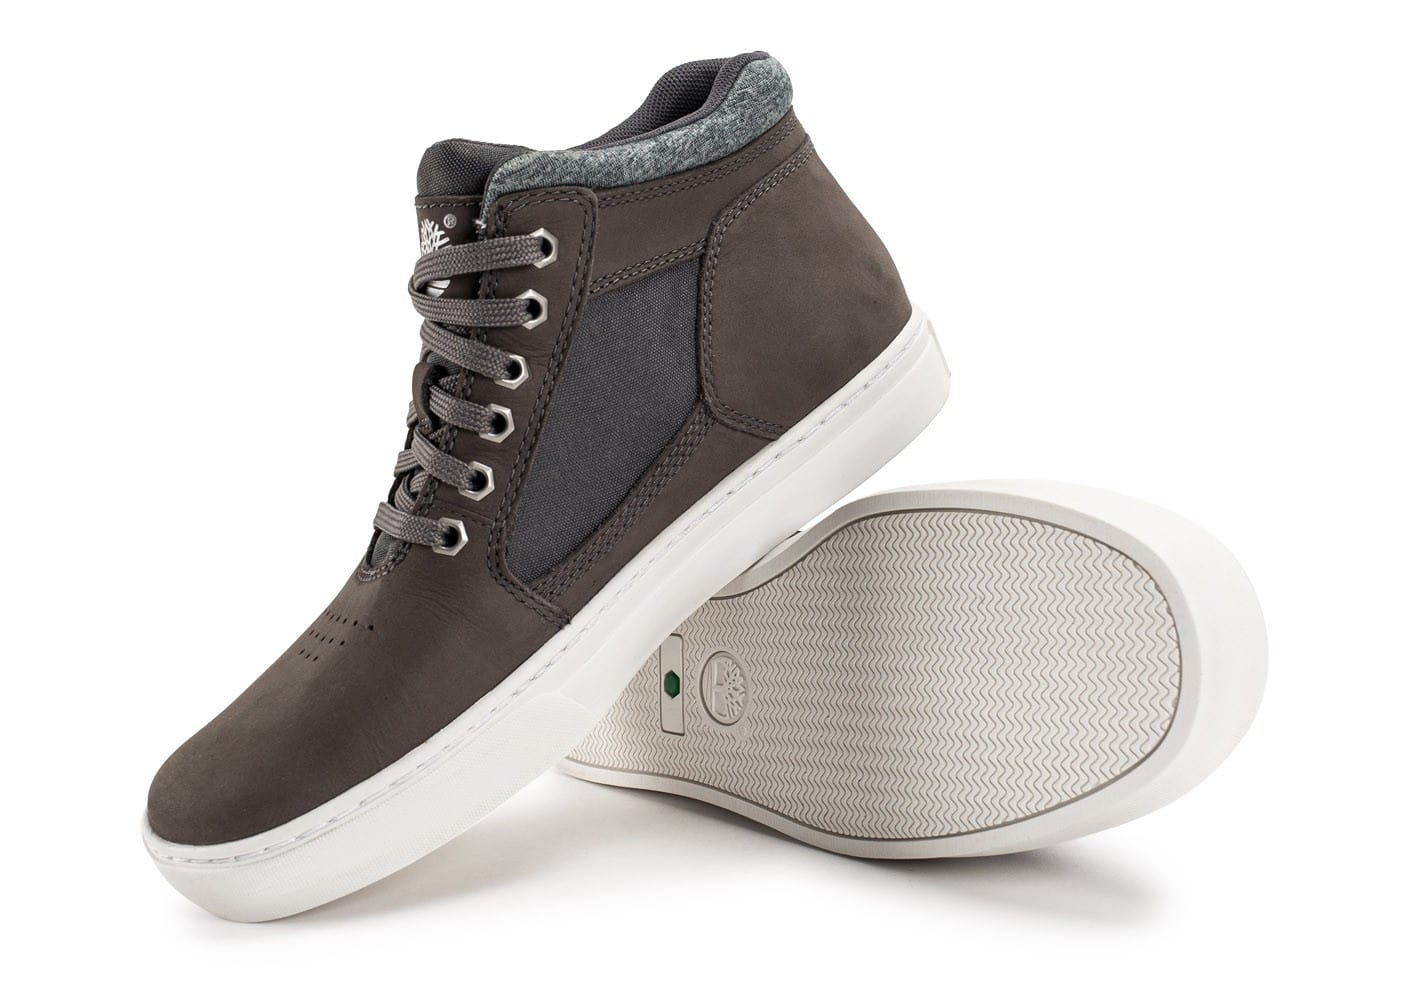 timberland cupsole merge 2 0 grise chaussures homme chausport. Black Bedroom Furniture Sets. Home Design Ideas